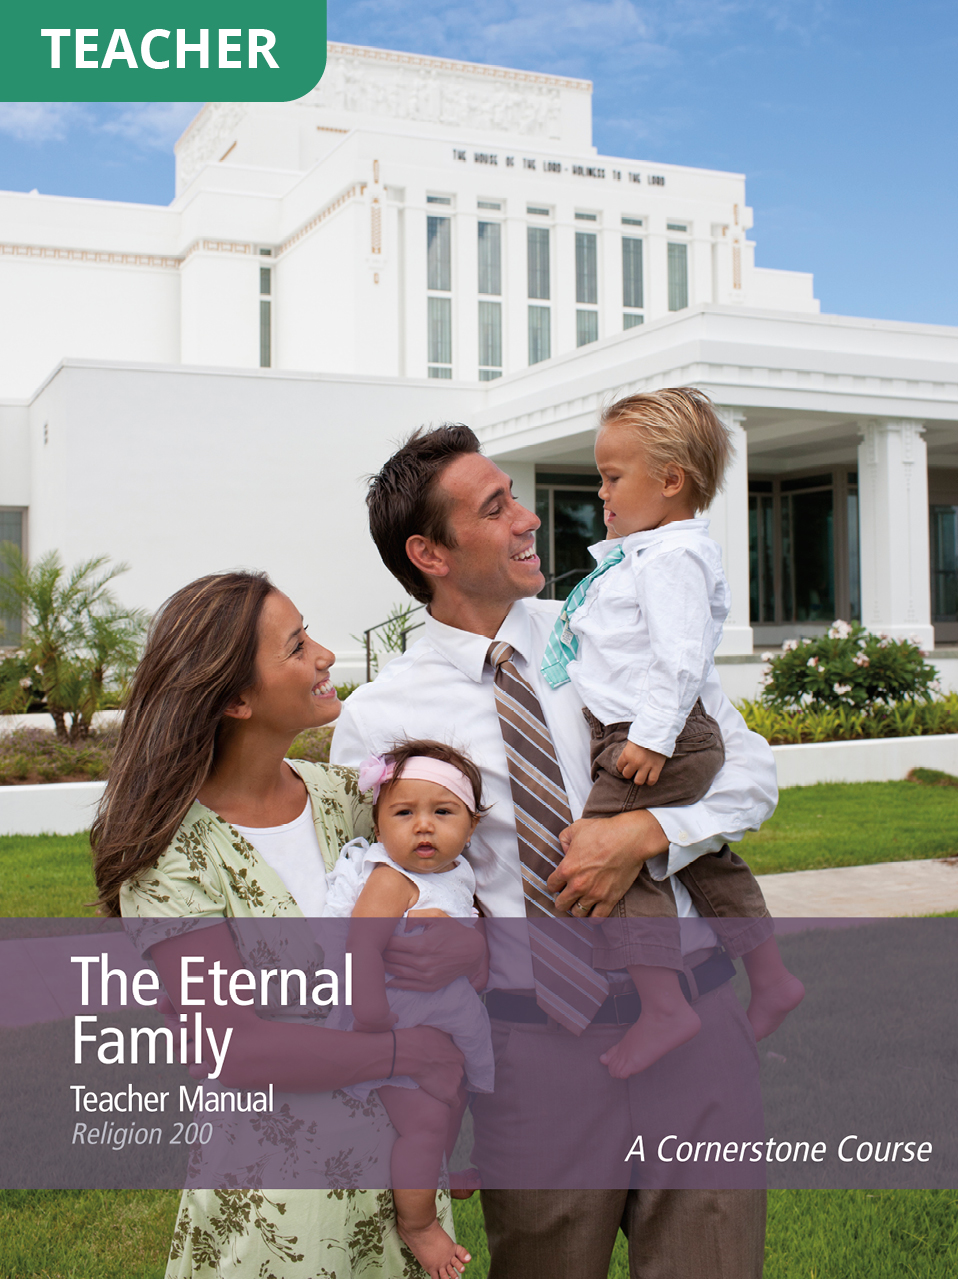 The Eternal Family Teacher Manual (Rel 200)